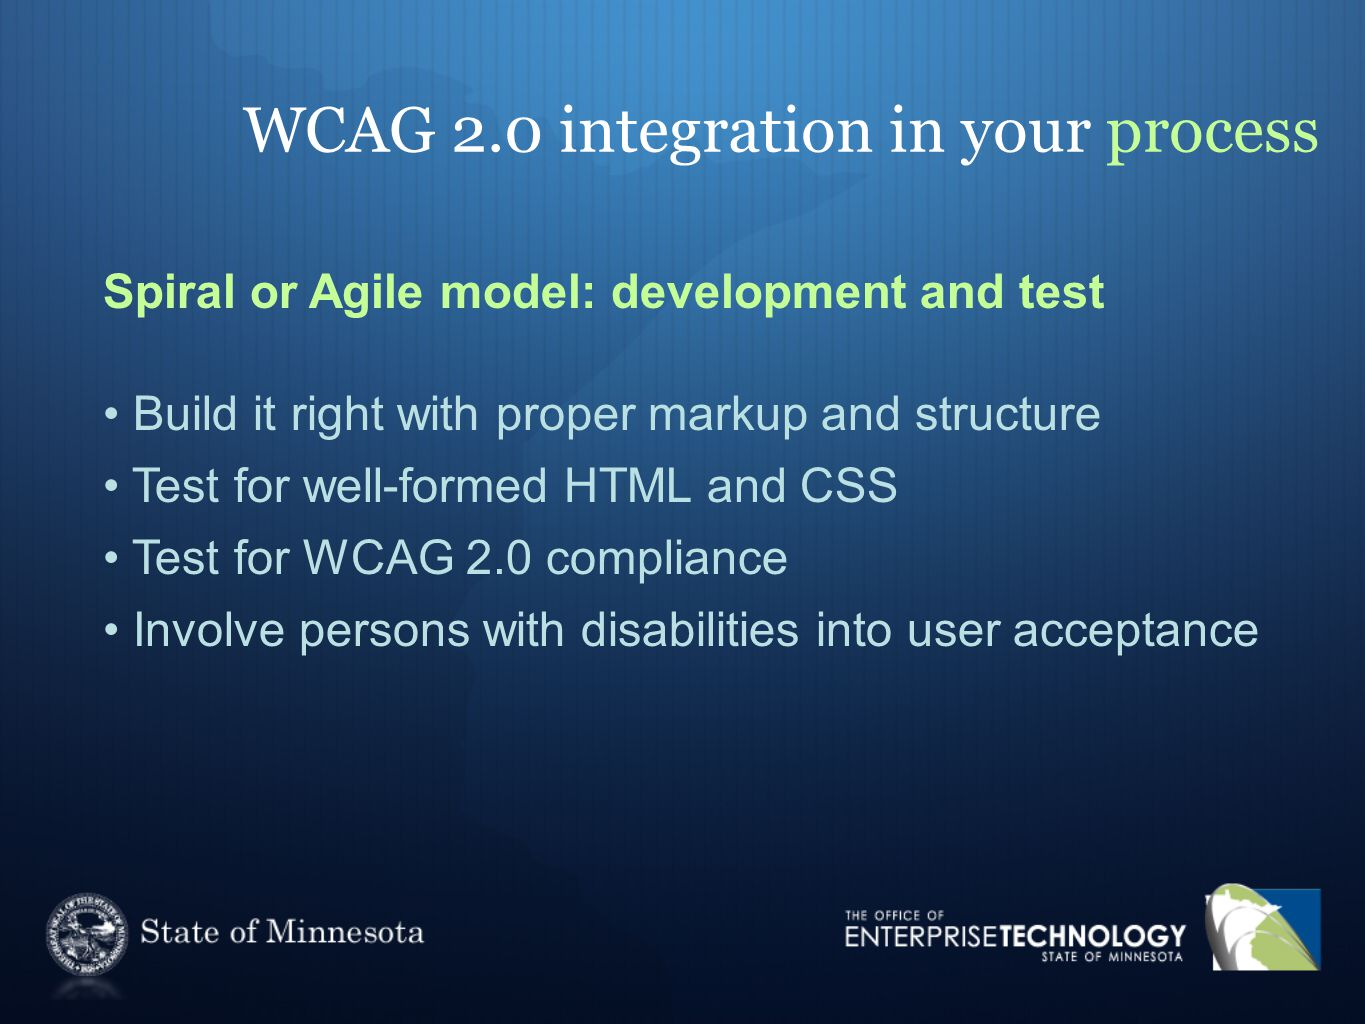 WCAG 2.0 integration in your process Spiral or Agile model: development and test Build it right with proper markup and structure Test for well-formed HTML and CSS Test for WCAG 2.0 compliance Involve persons with disabilities into user acceptance